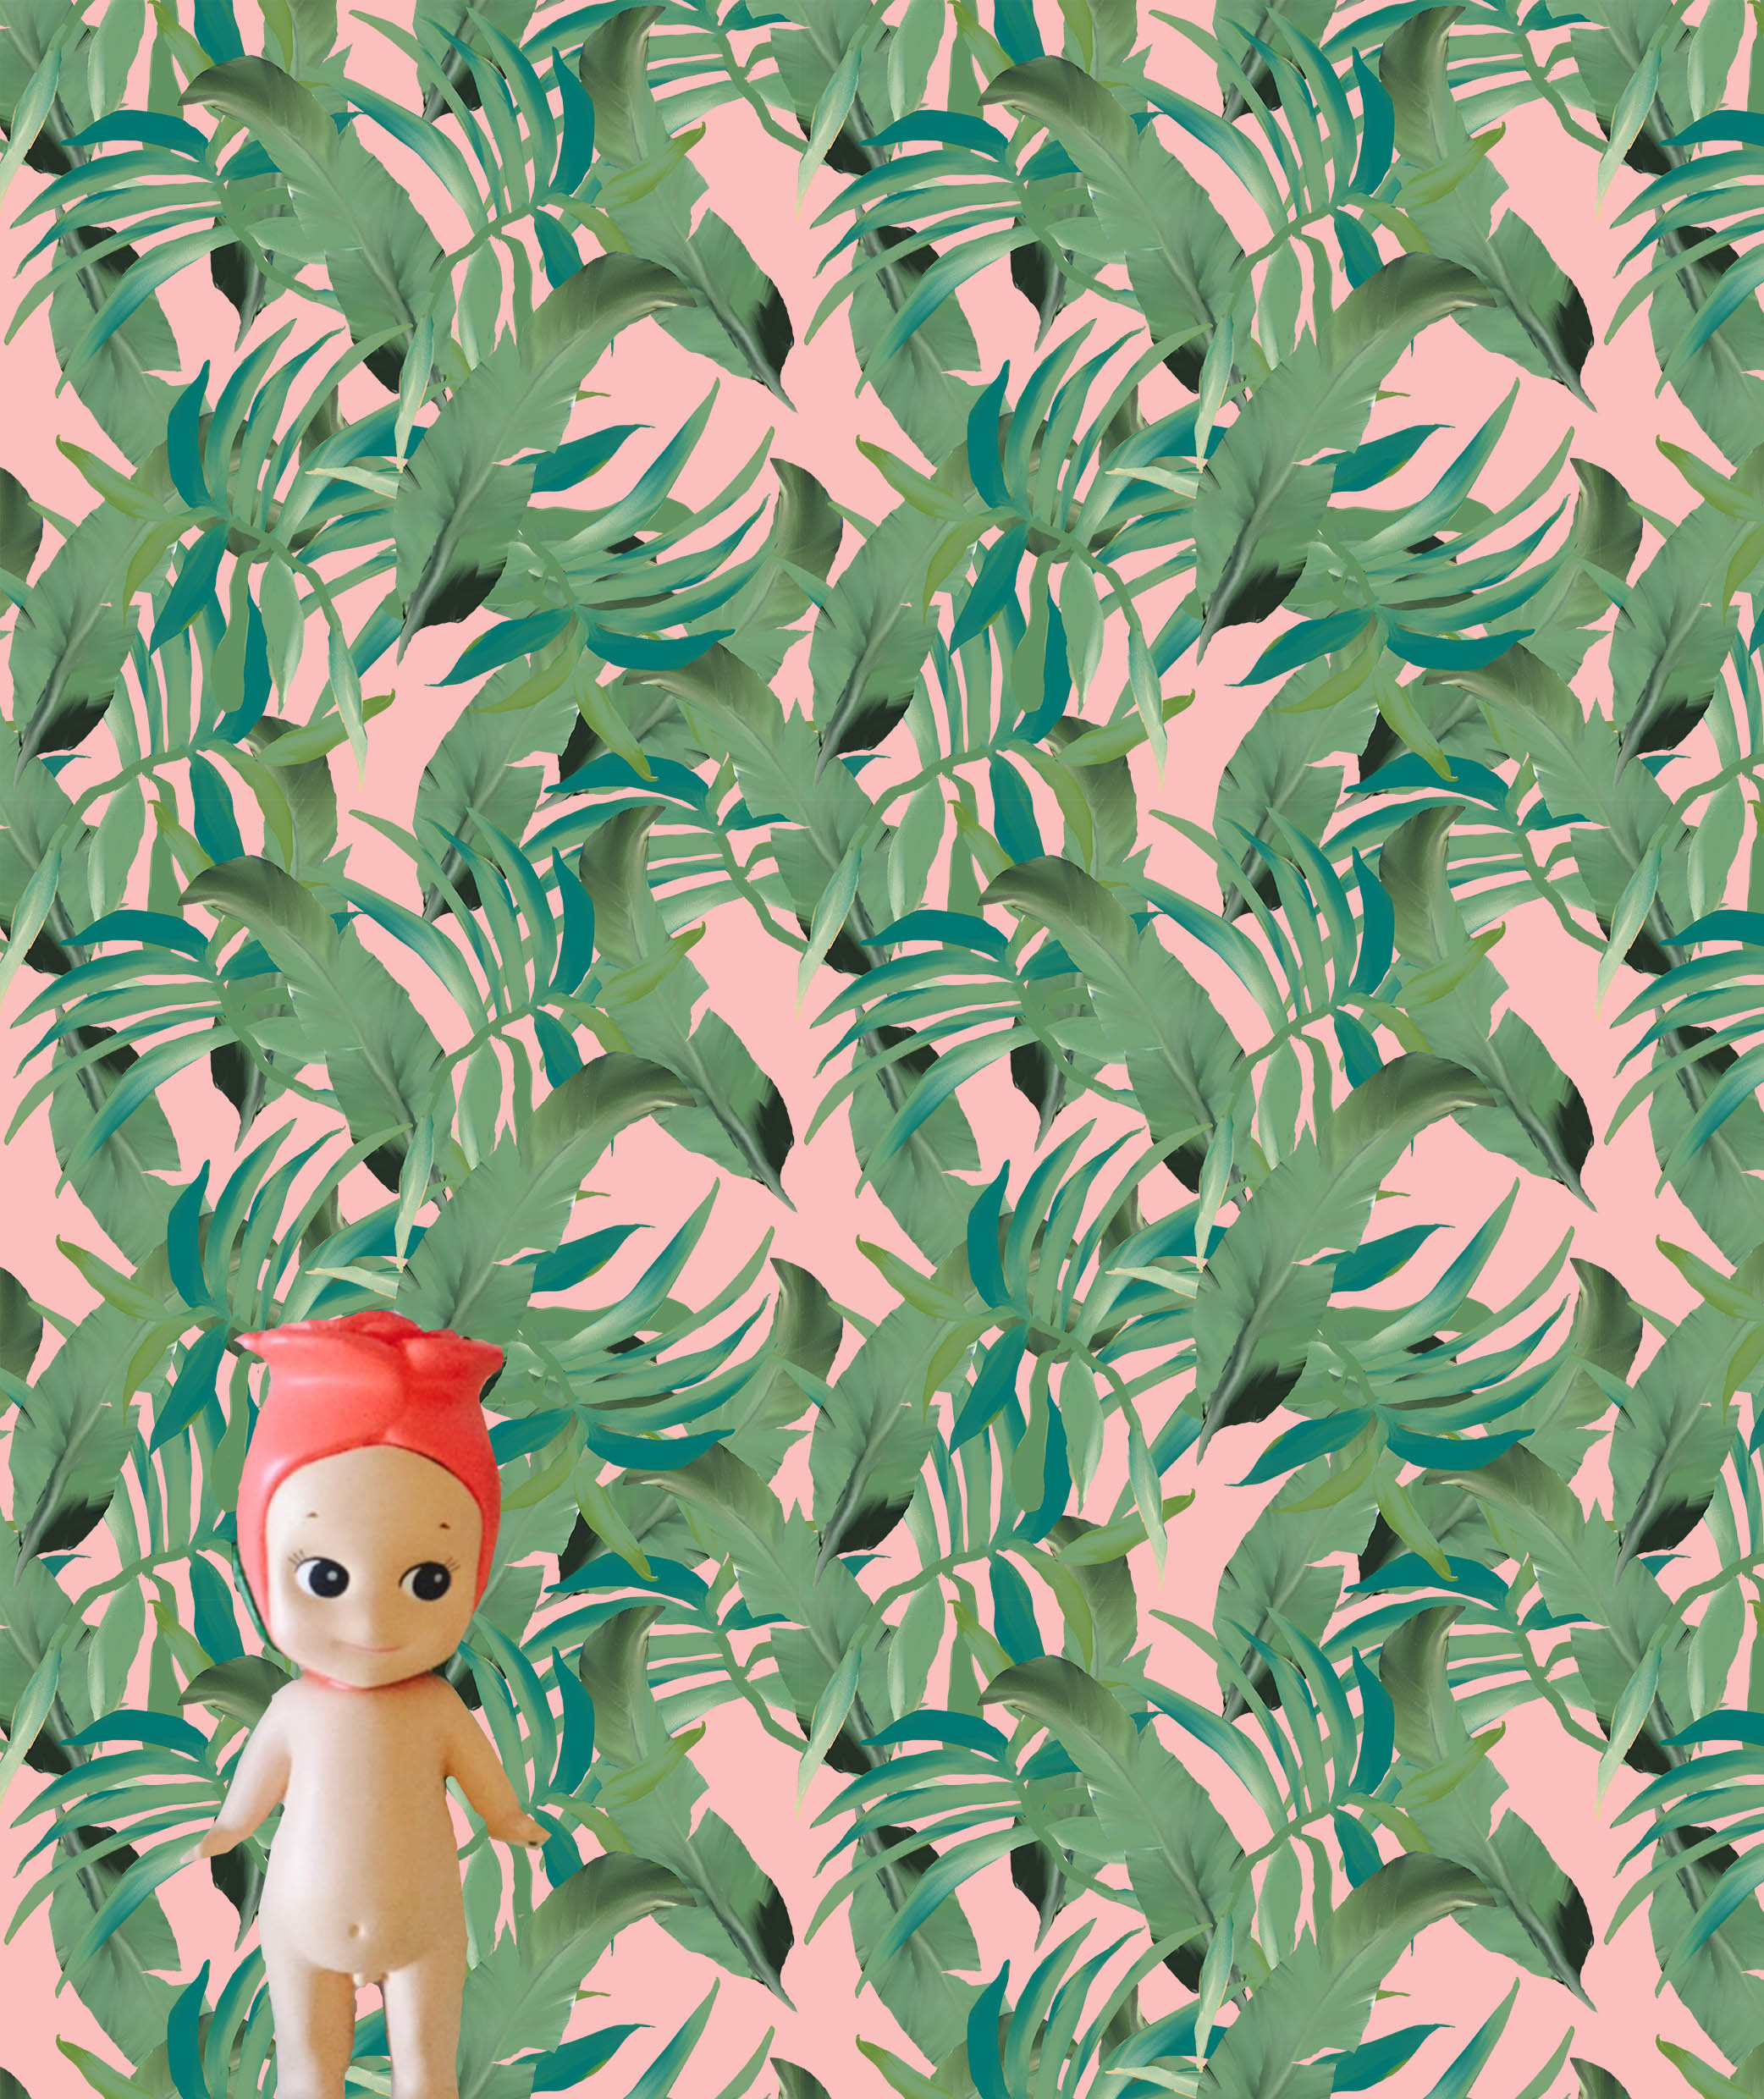 This Sonny Angel doll is to show scale. The height of this piece of wallpaper is the width of an A4 or letter sized piece of paper that you can print using your home printer!